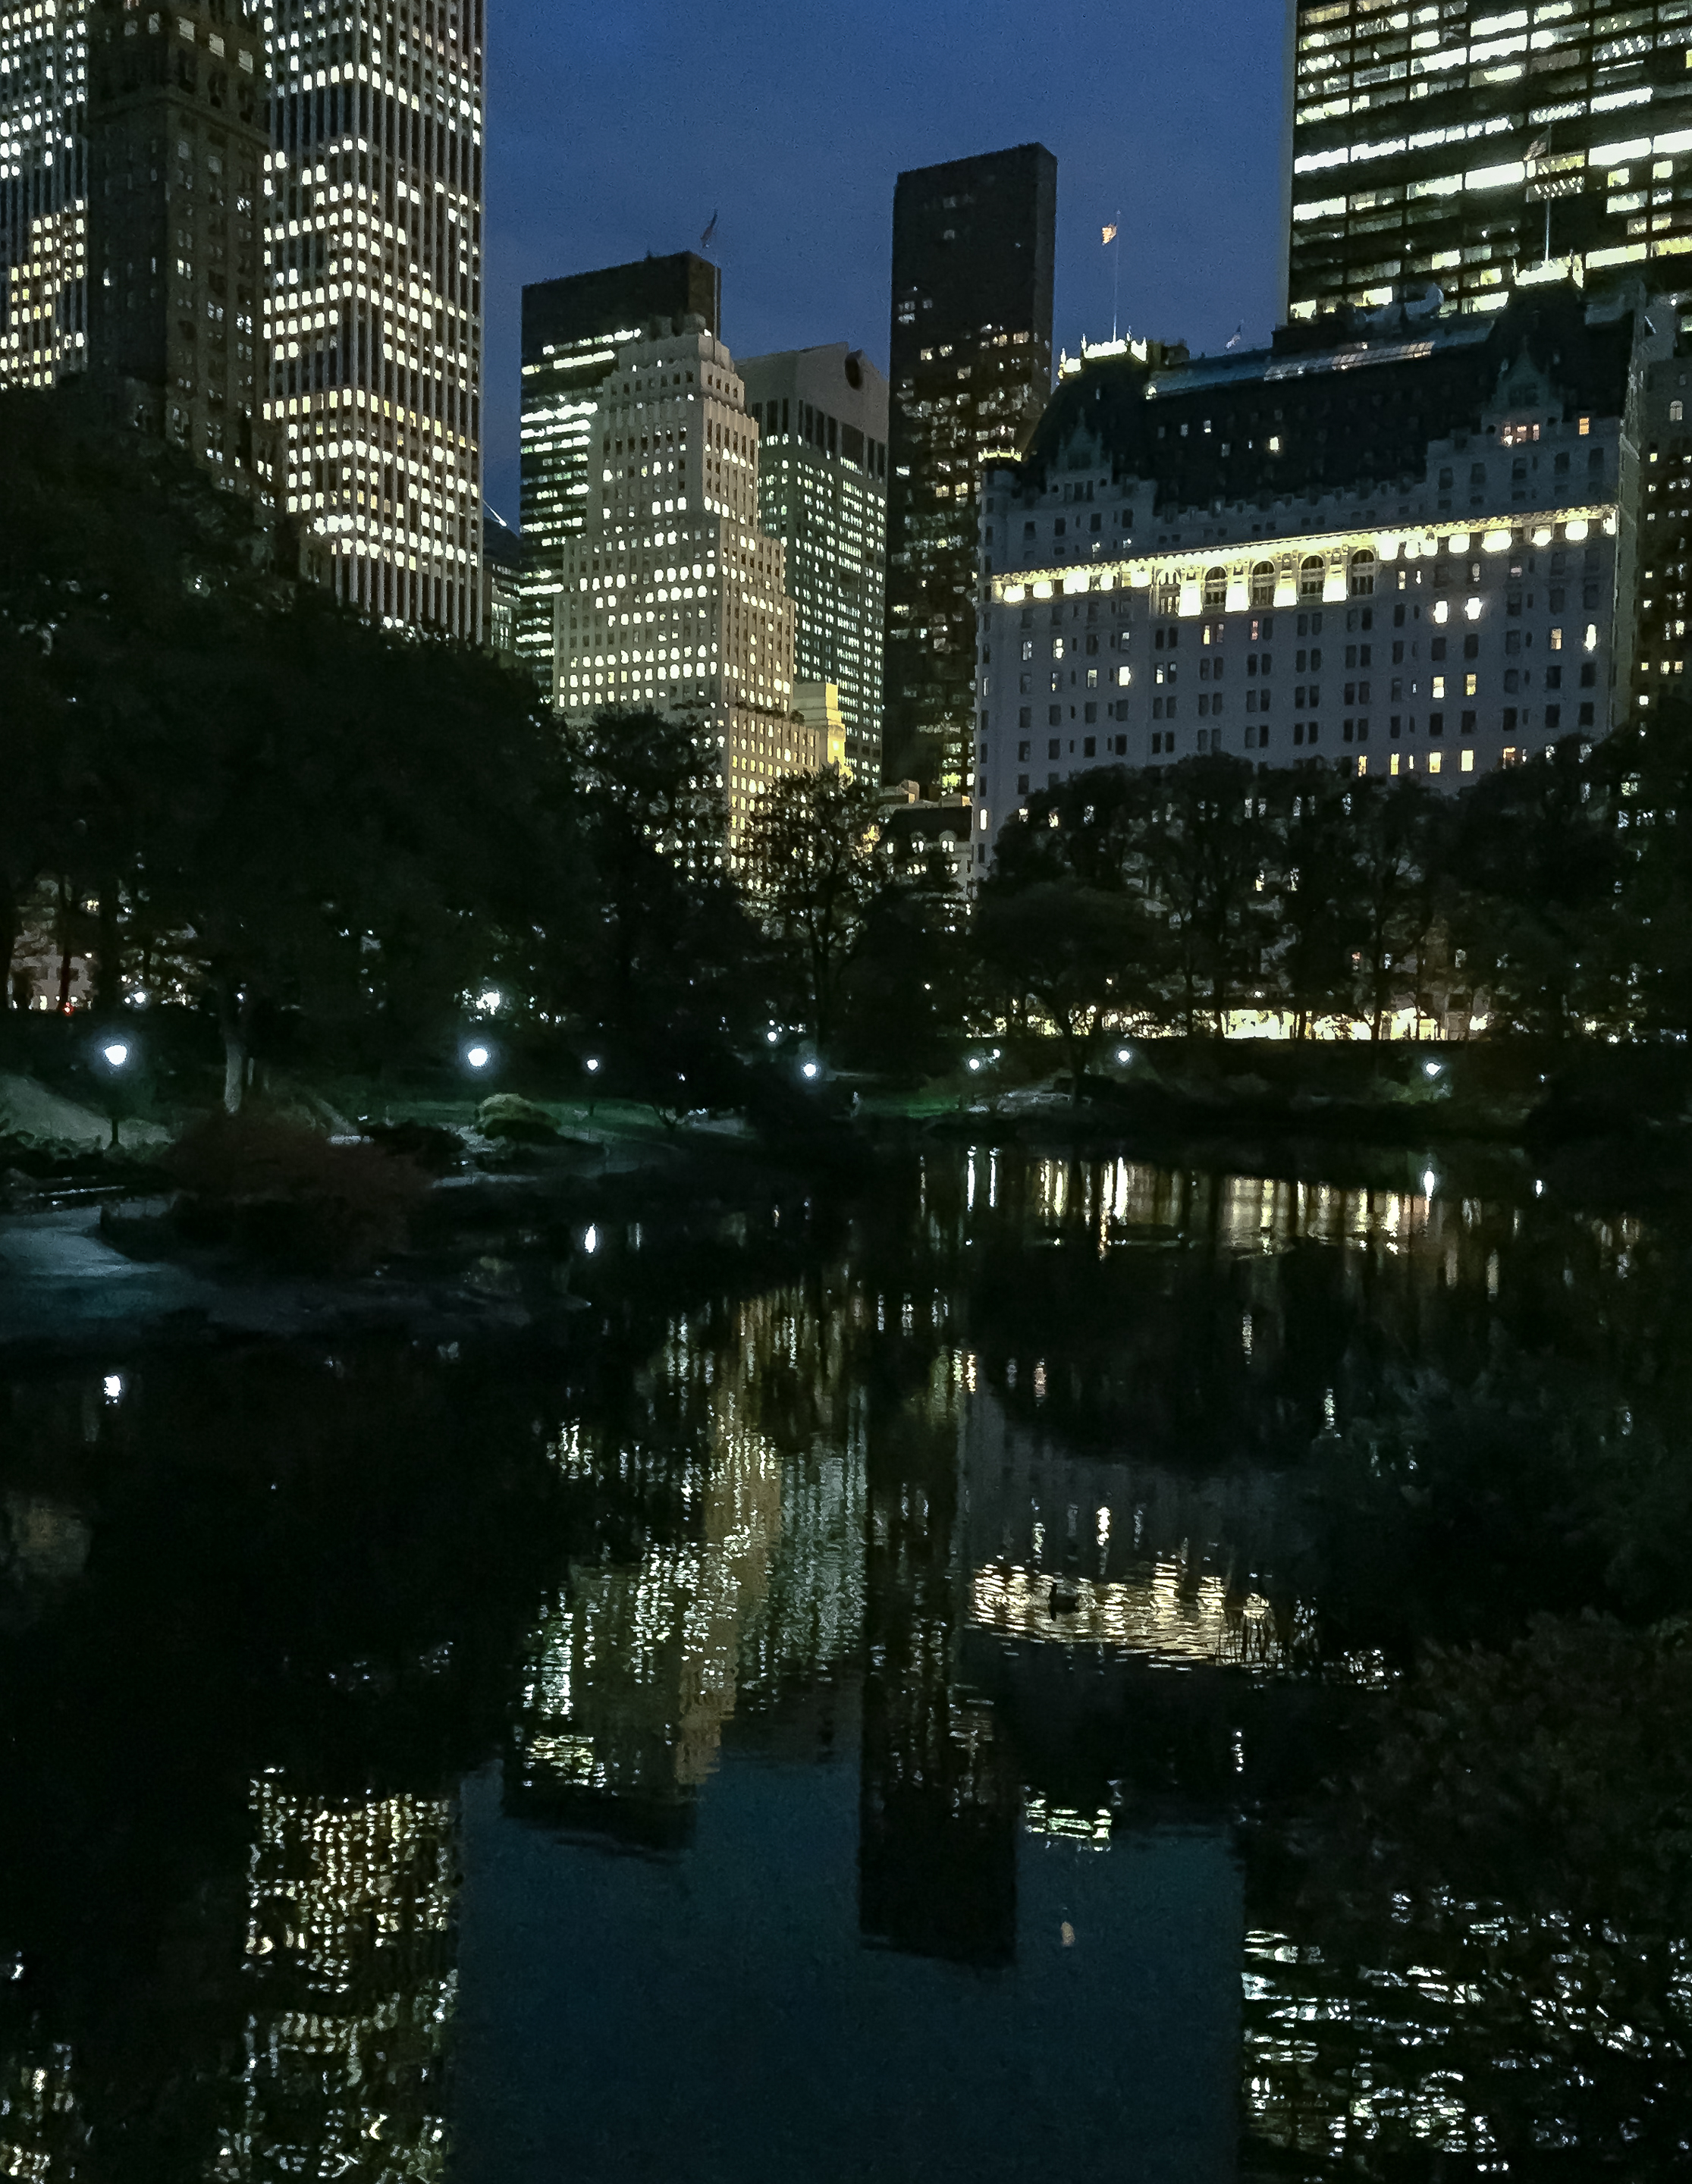 Night Reflections, Central Park